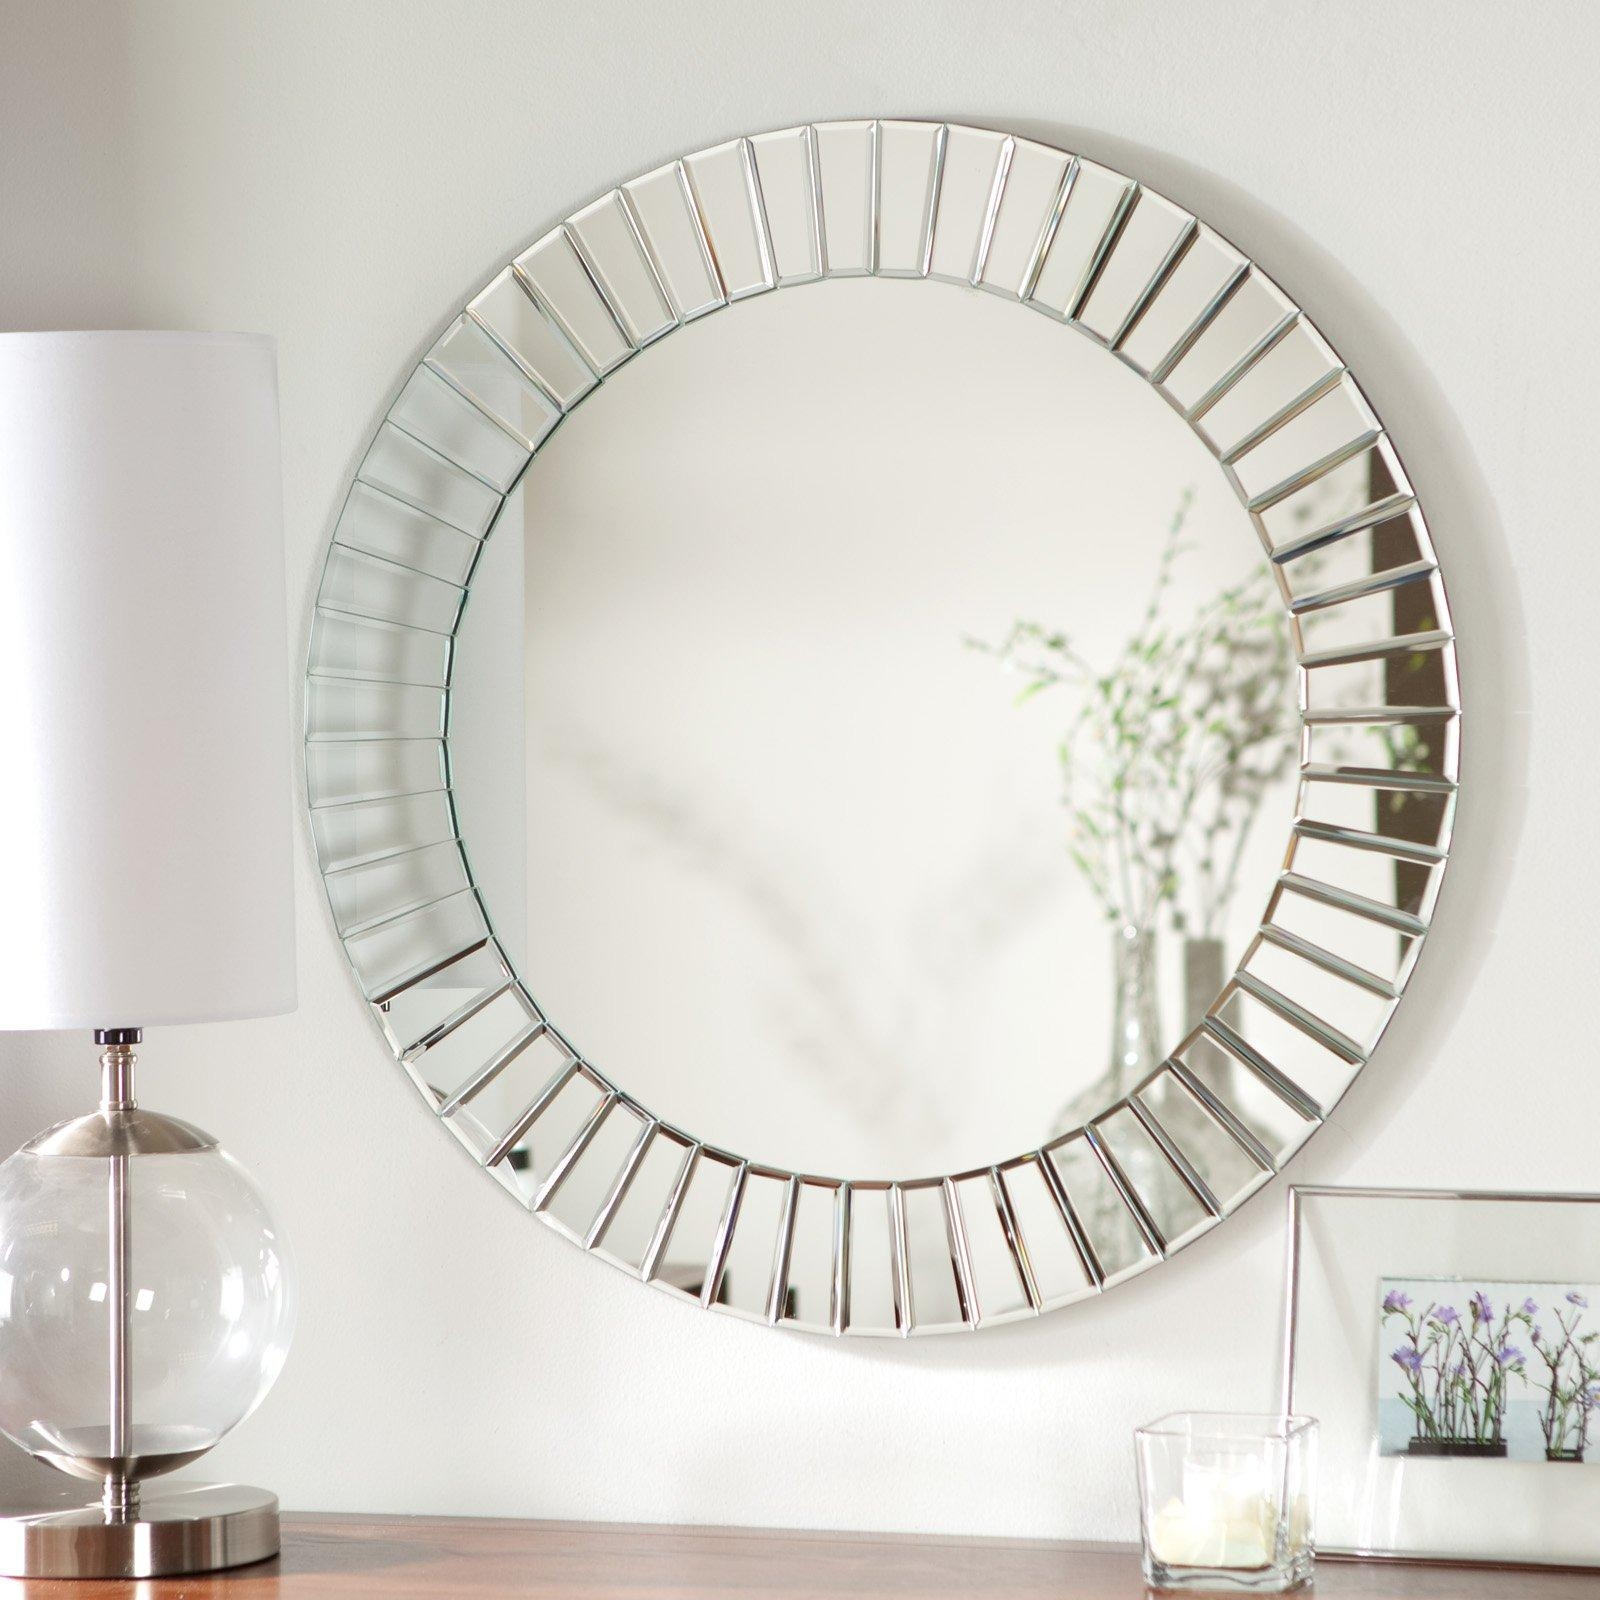 Winsome Large Ornate Decorative Wall Mirror Mantle Entry Dark Gold In Large Fancy Wall Mirrors (Image 20 of 20)